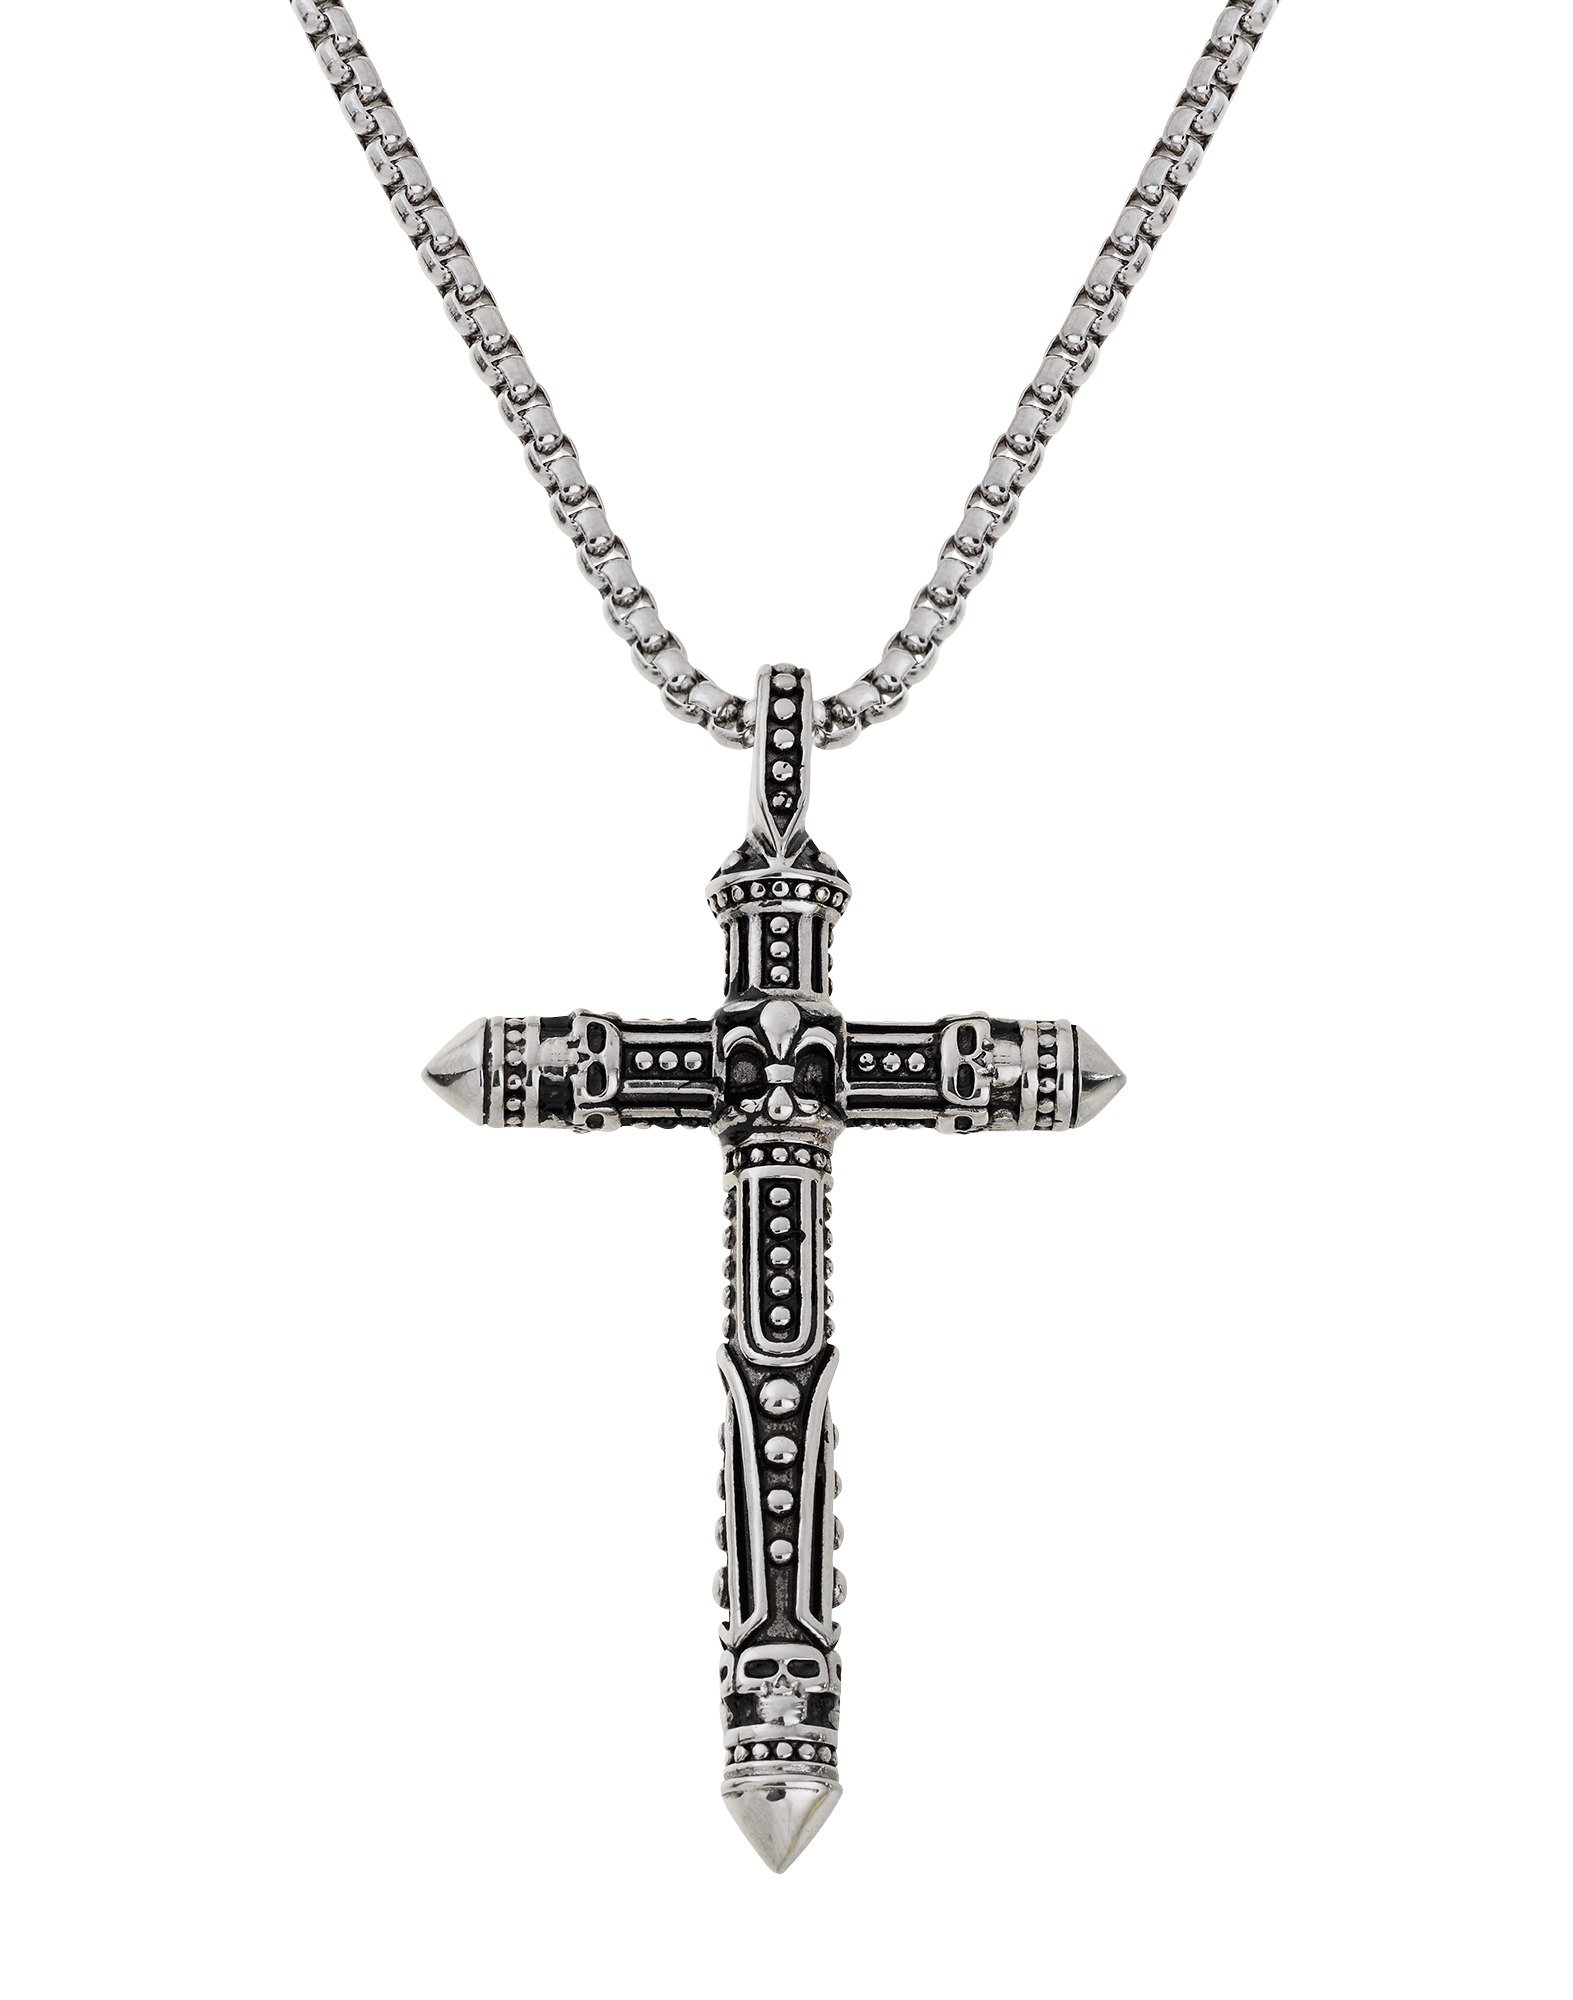 Image of Revere Men's Stainless Steel Cross Pendant